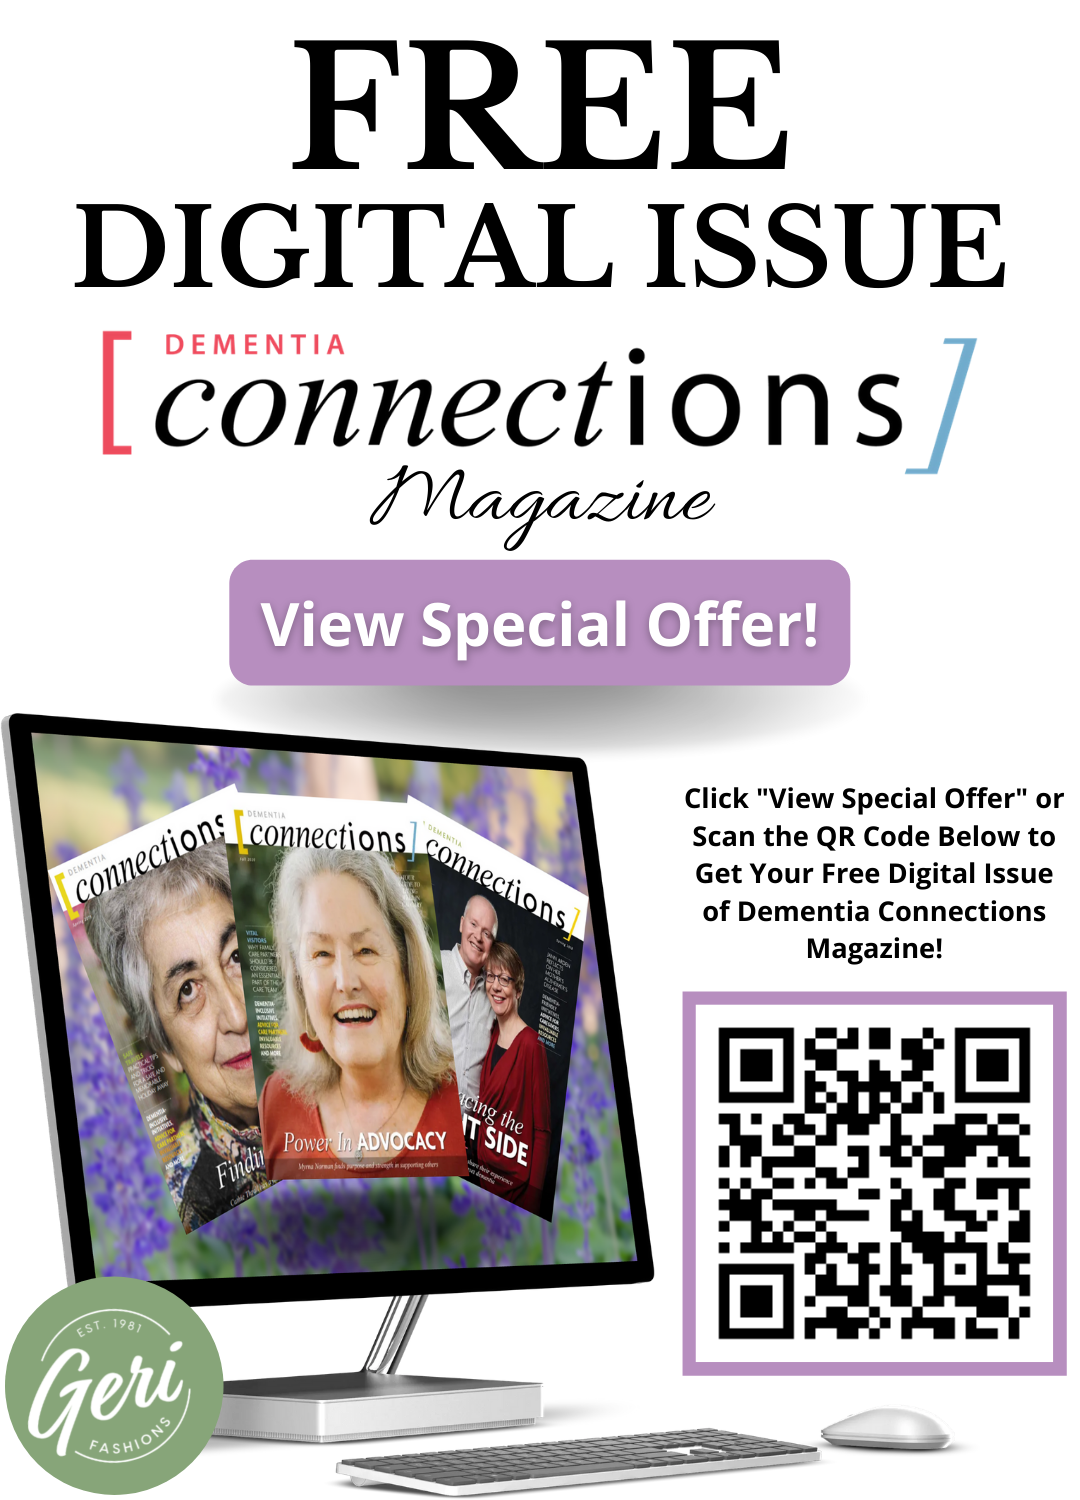 Geri Fashions Special Offer - Free Digital Issue of Dementia Connections Magazine